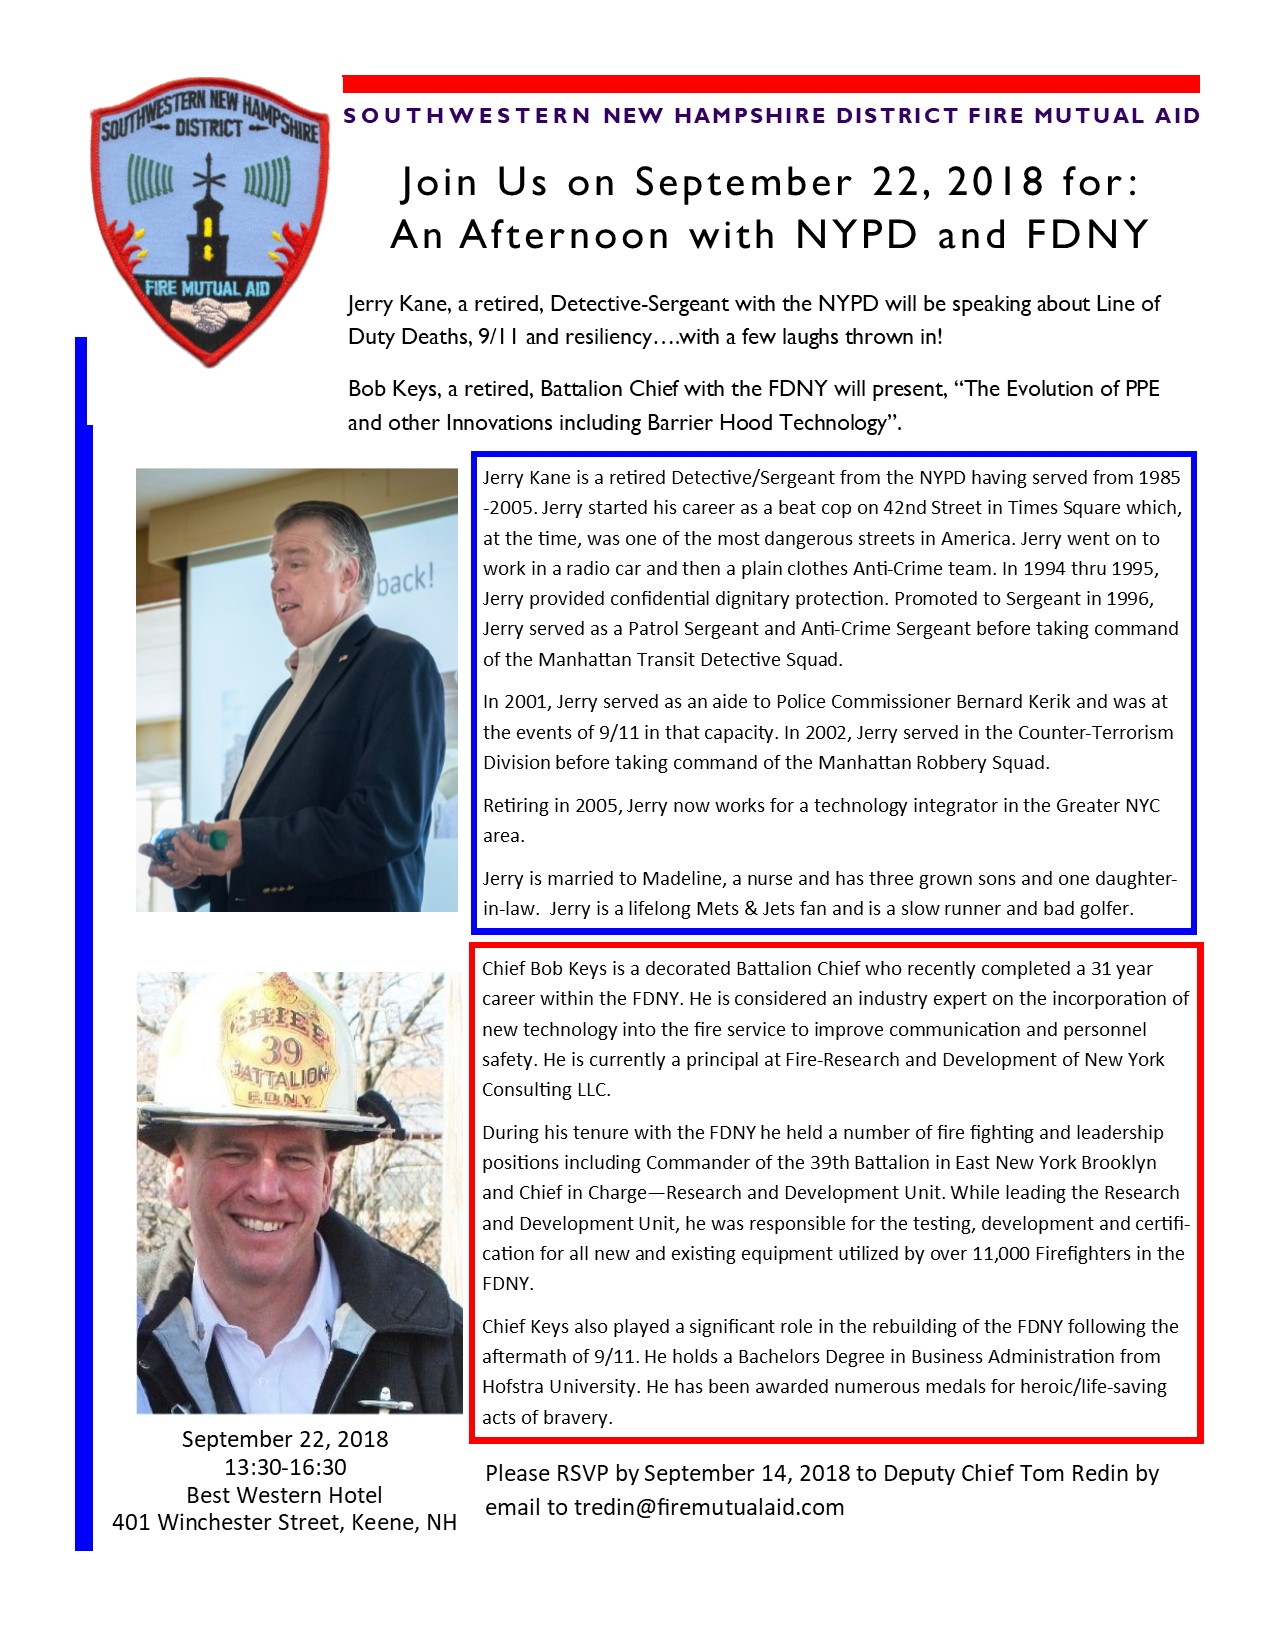 An Afternoon with FDNY and NYPD.jpg